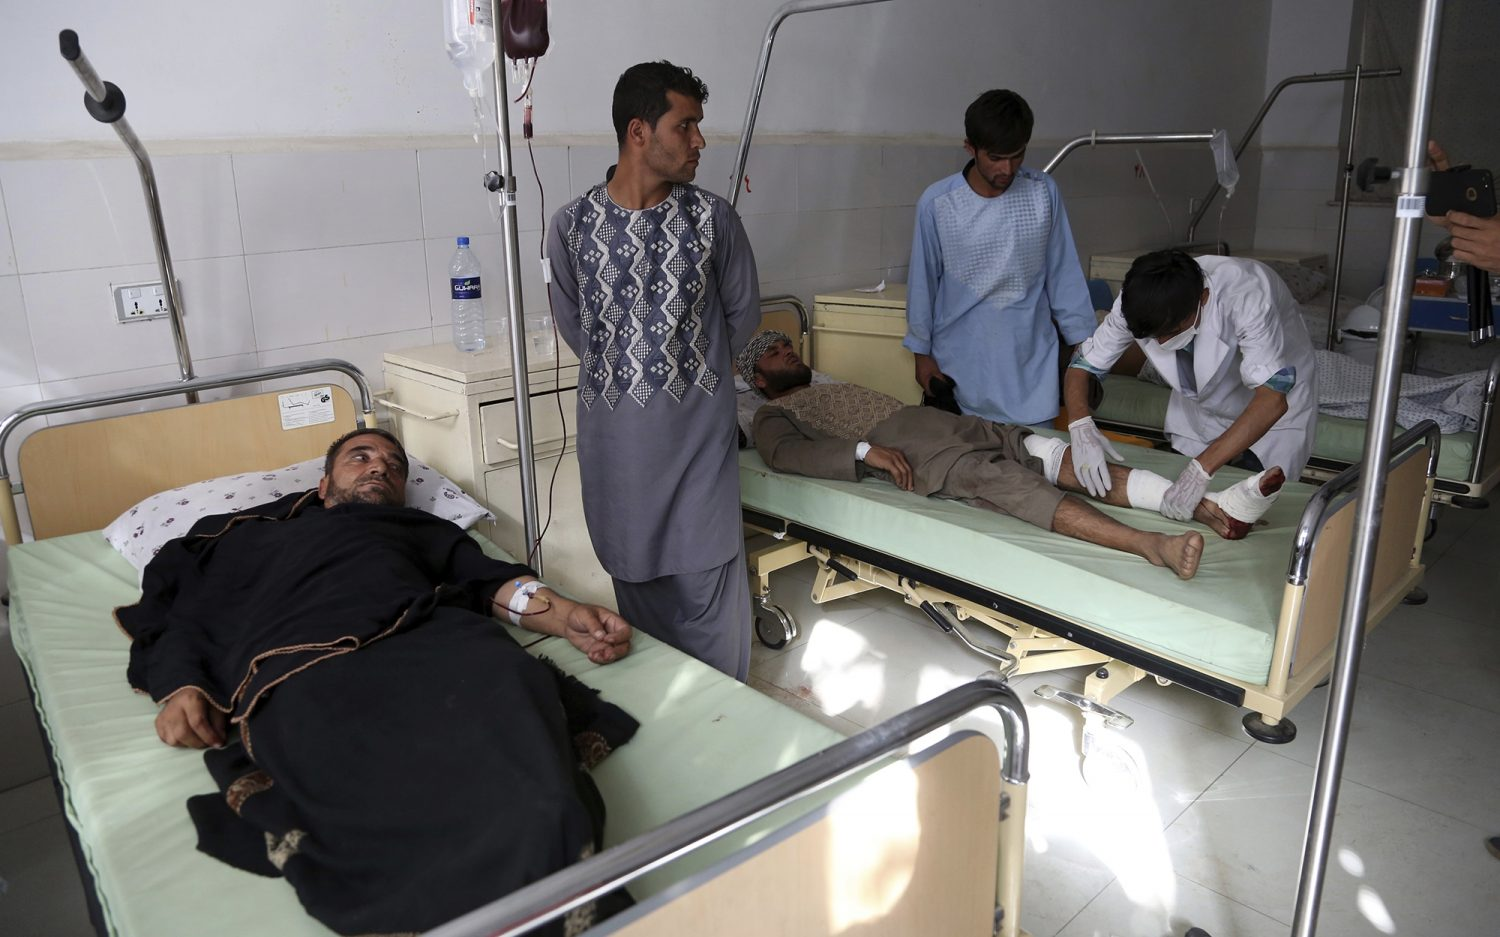 Afghans wary of more carnage